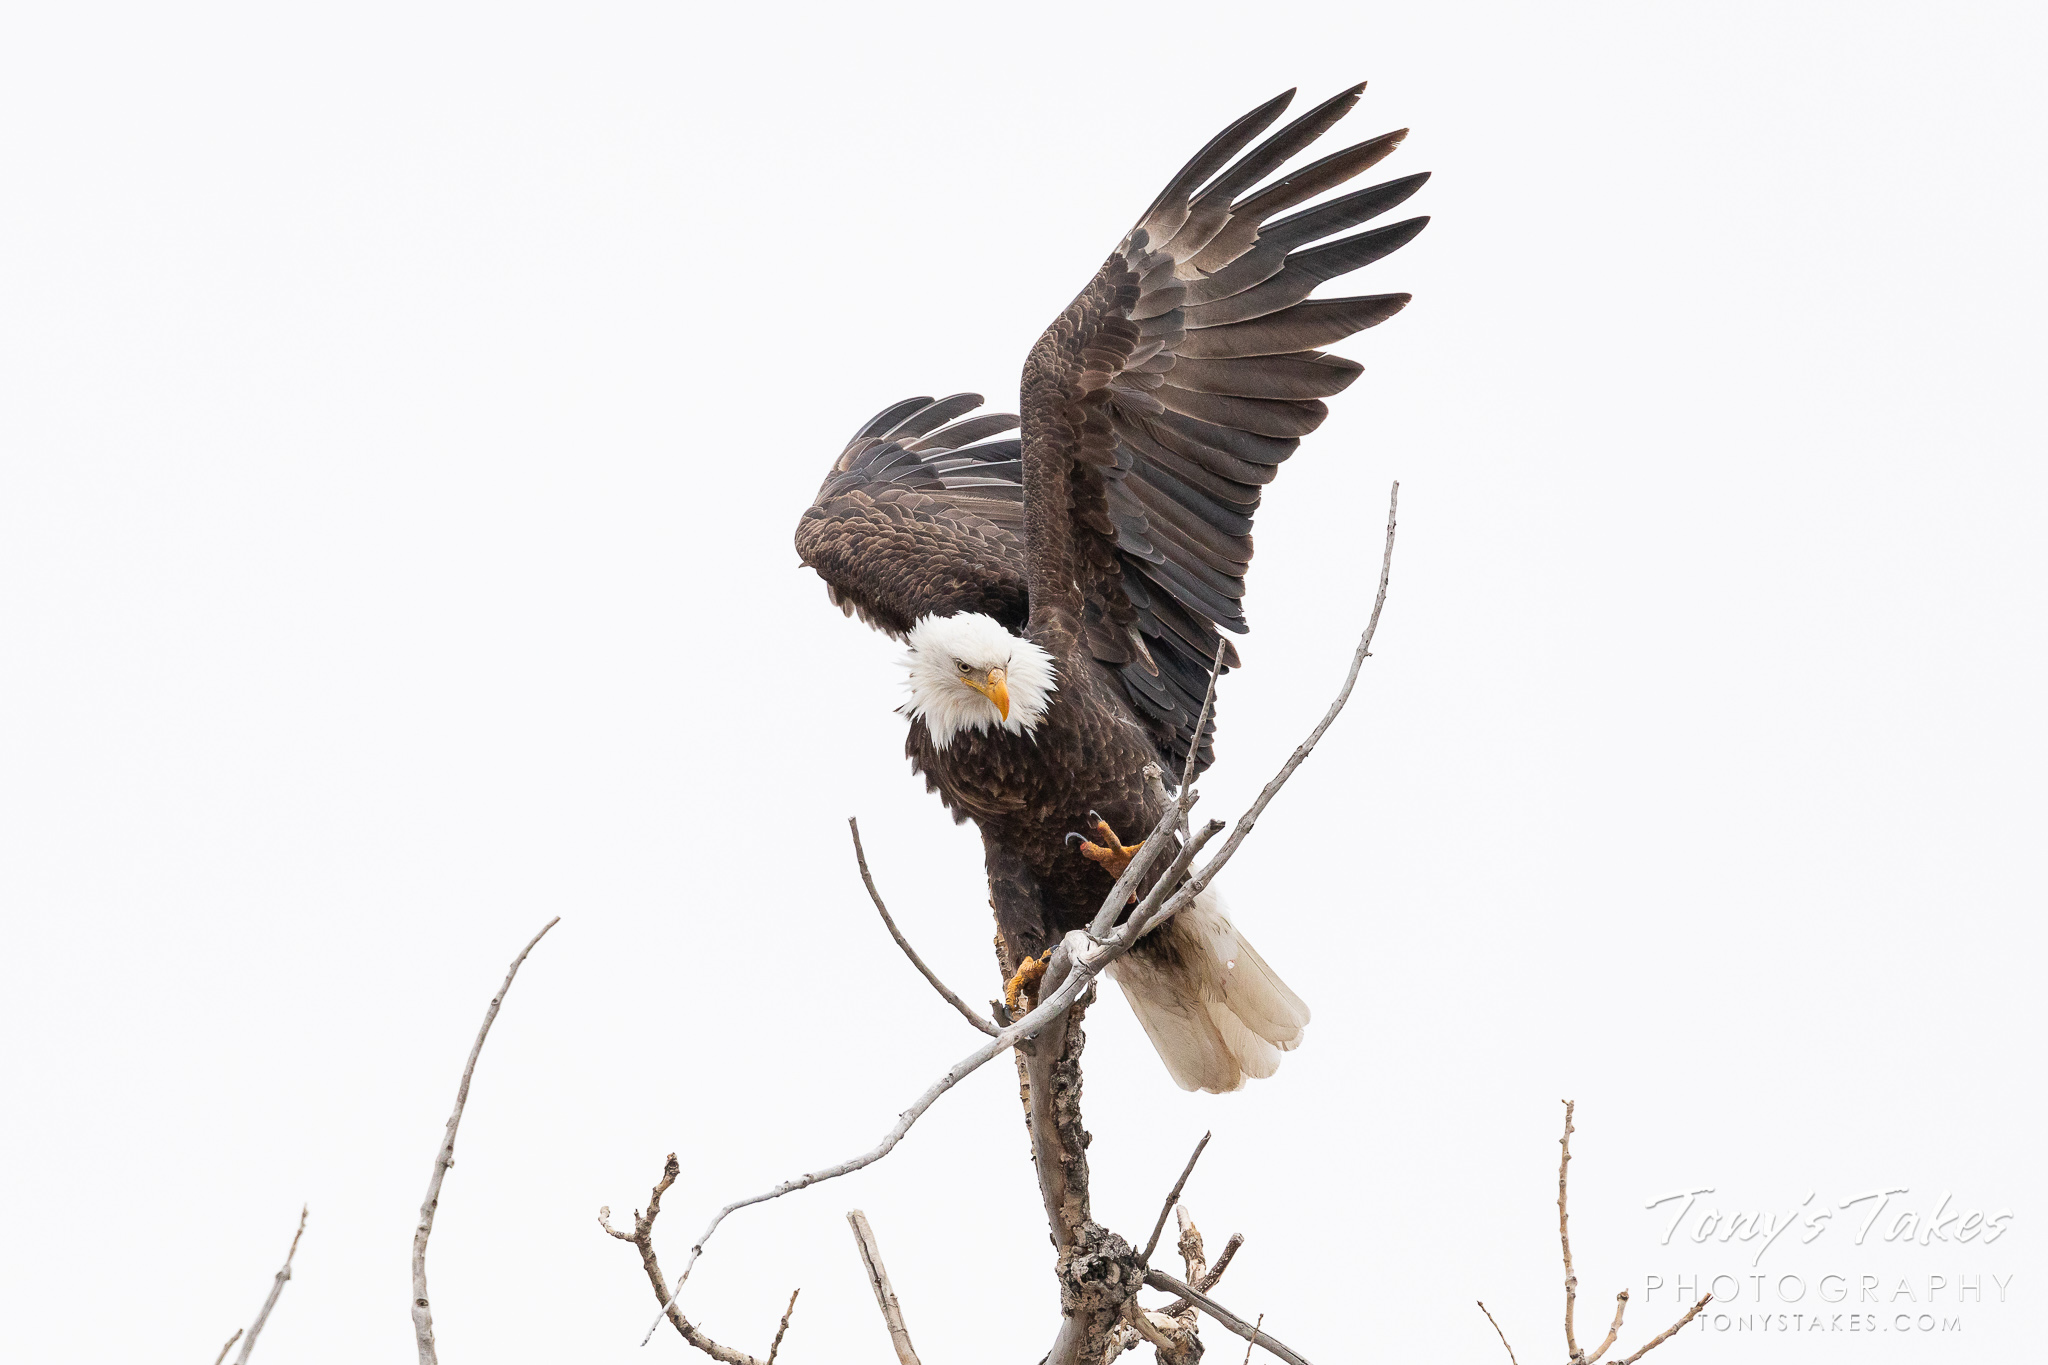 A bald eagle struggles to rearrange on its perch in Adams County, Colorado. (© Tony's Takes)